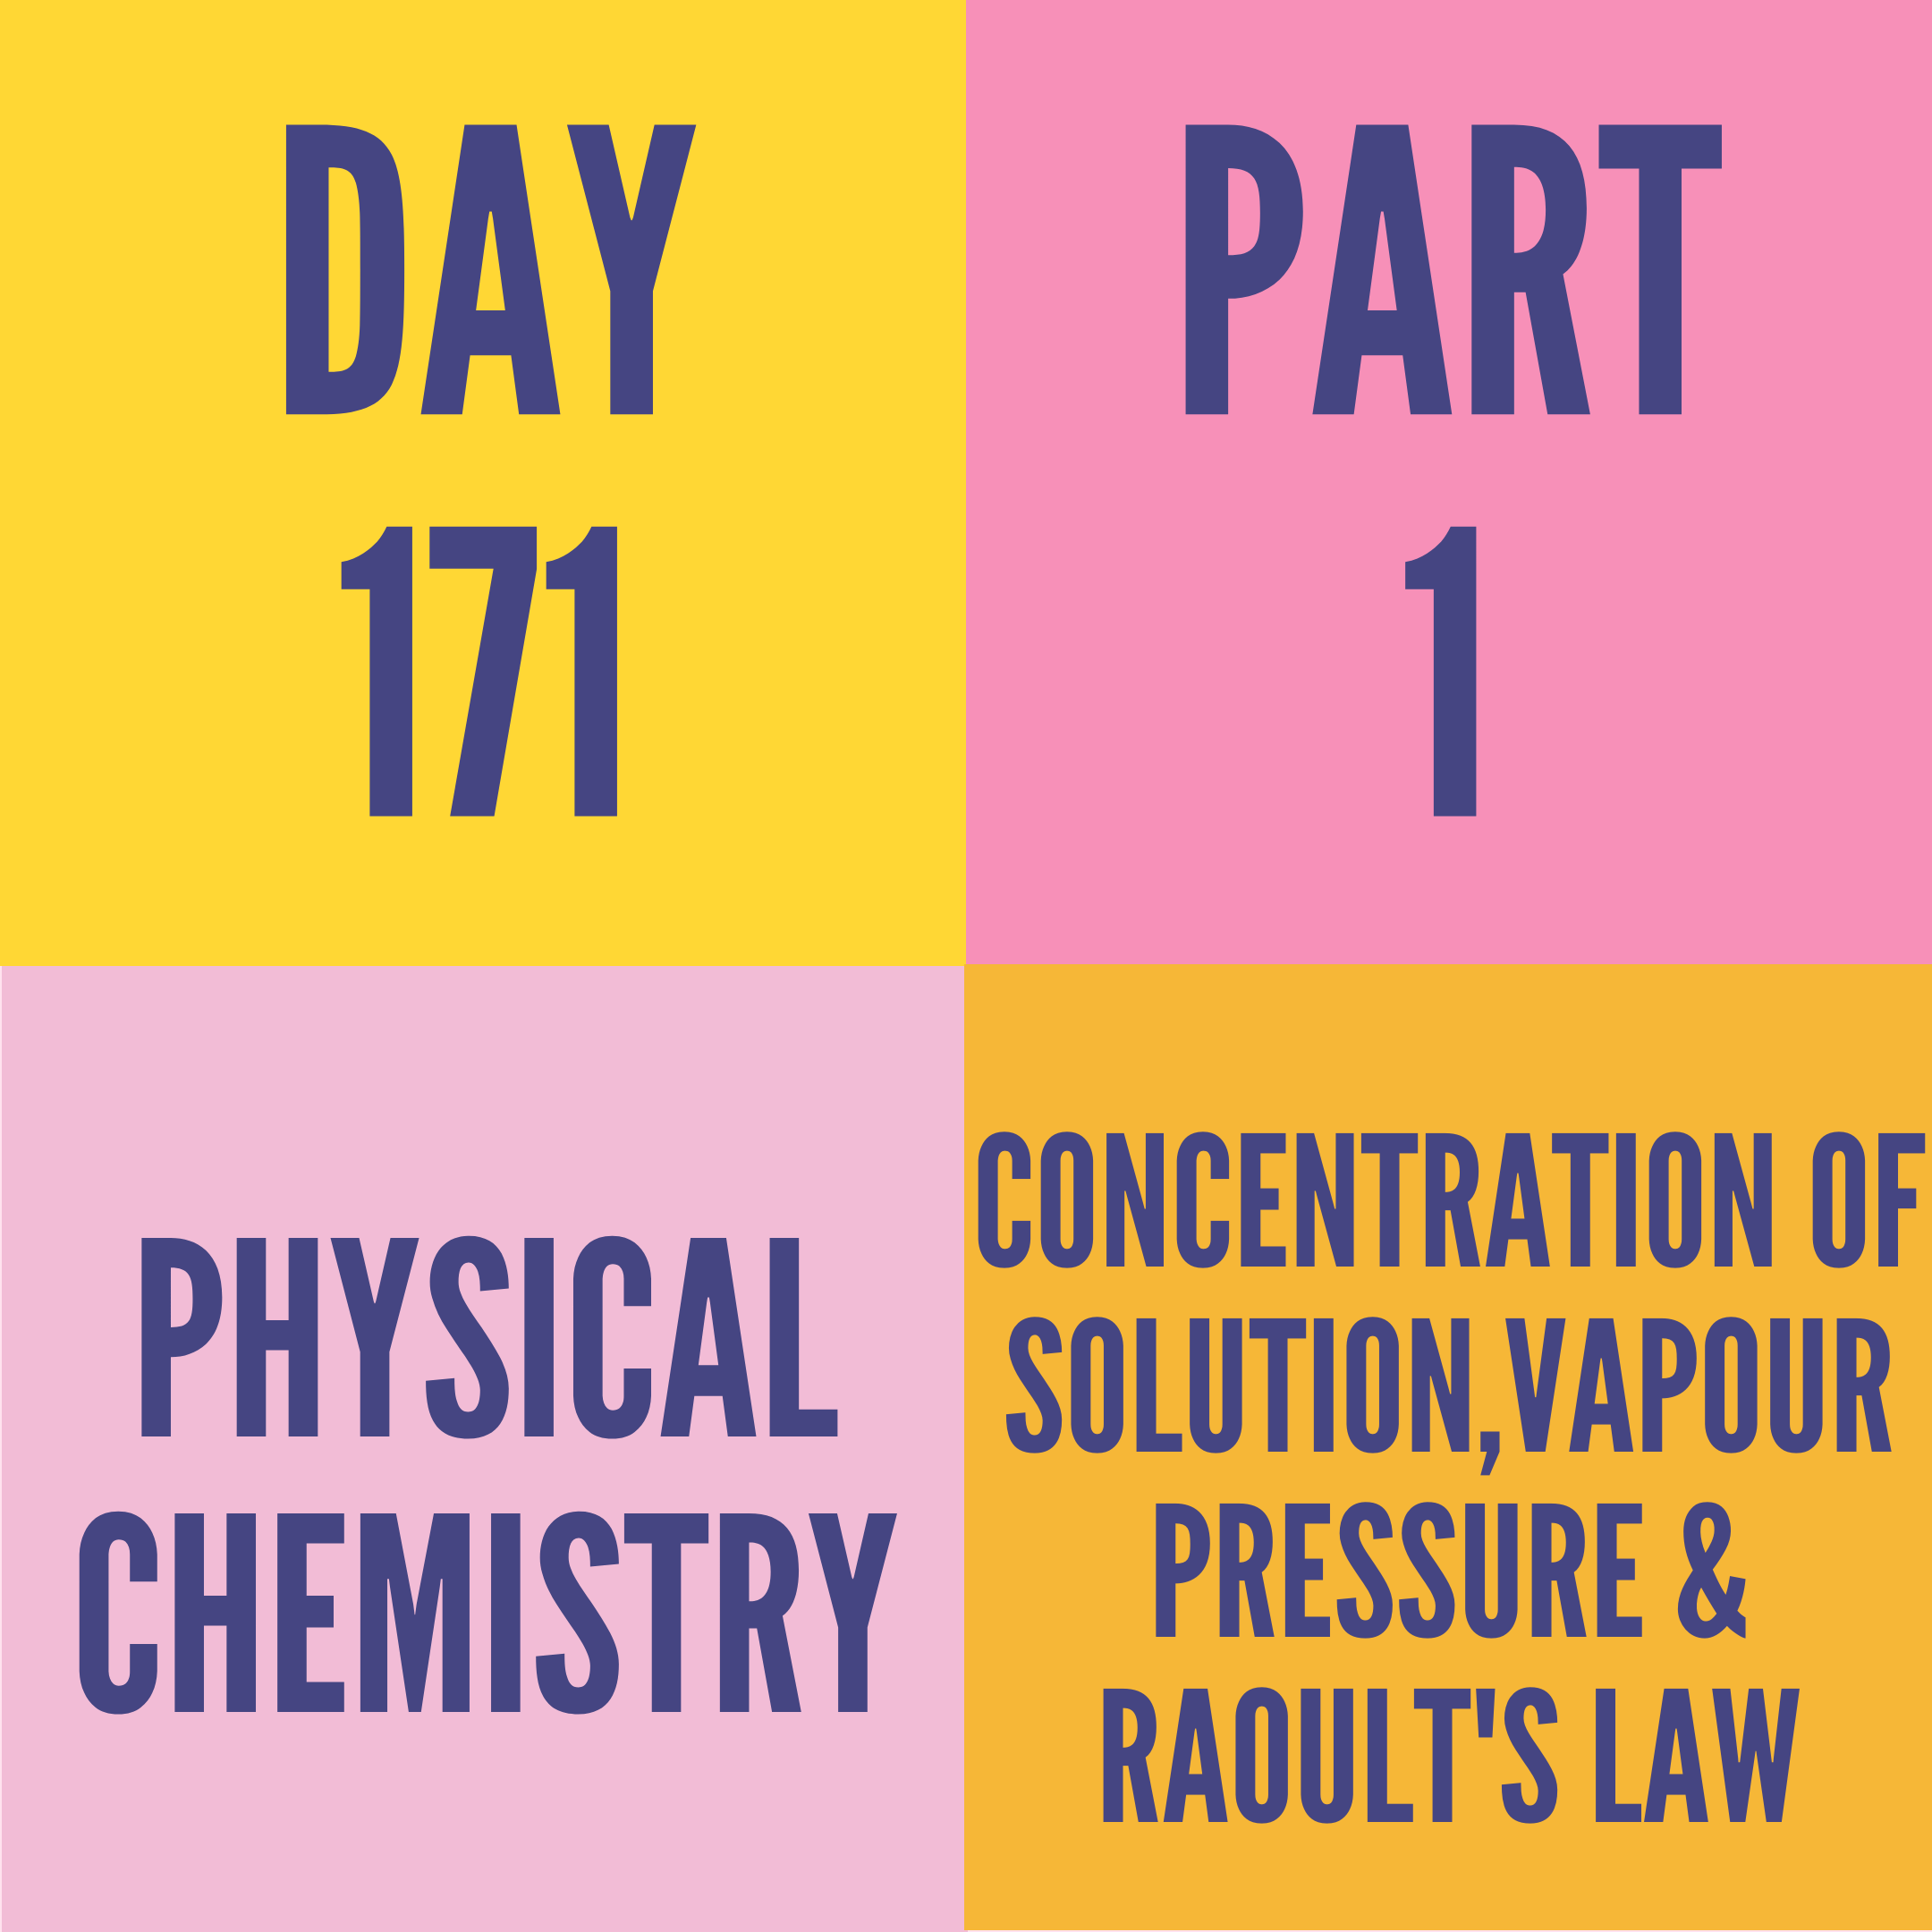 DAY-171 PART-1  (TARGET) CONCENTRATION OF SOLUTION,VAPOUR PRESSURE & RAOULT'S LAW